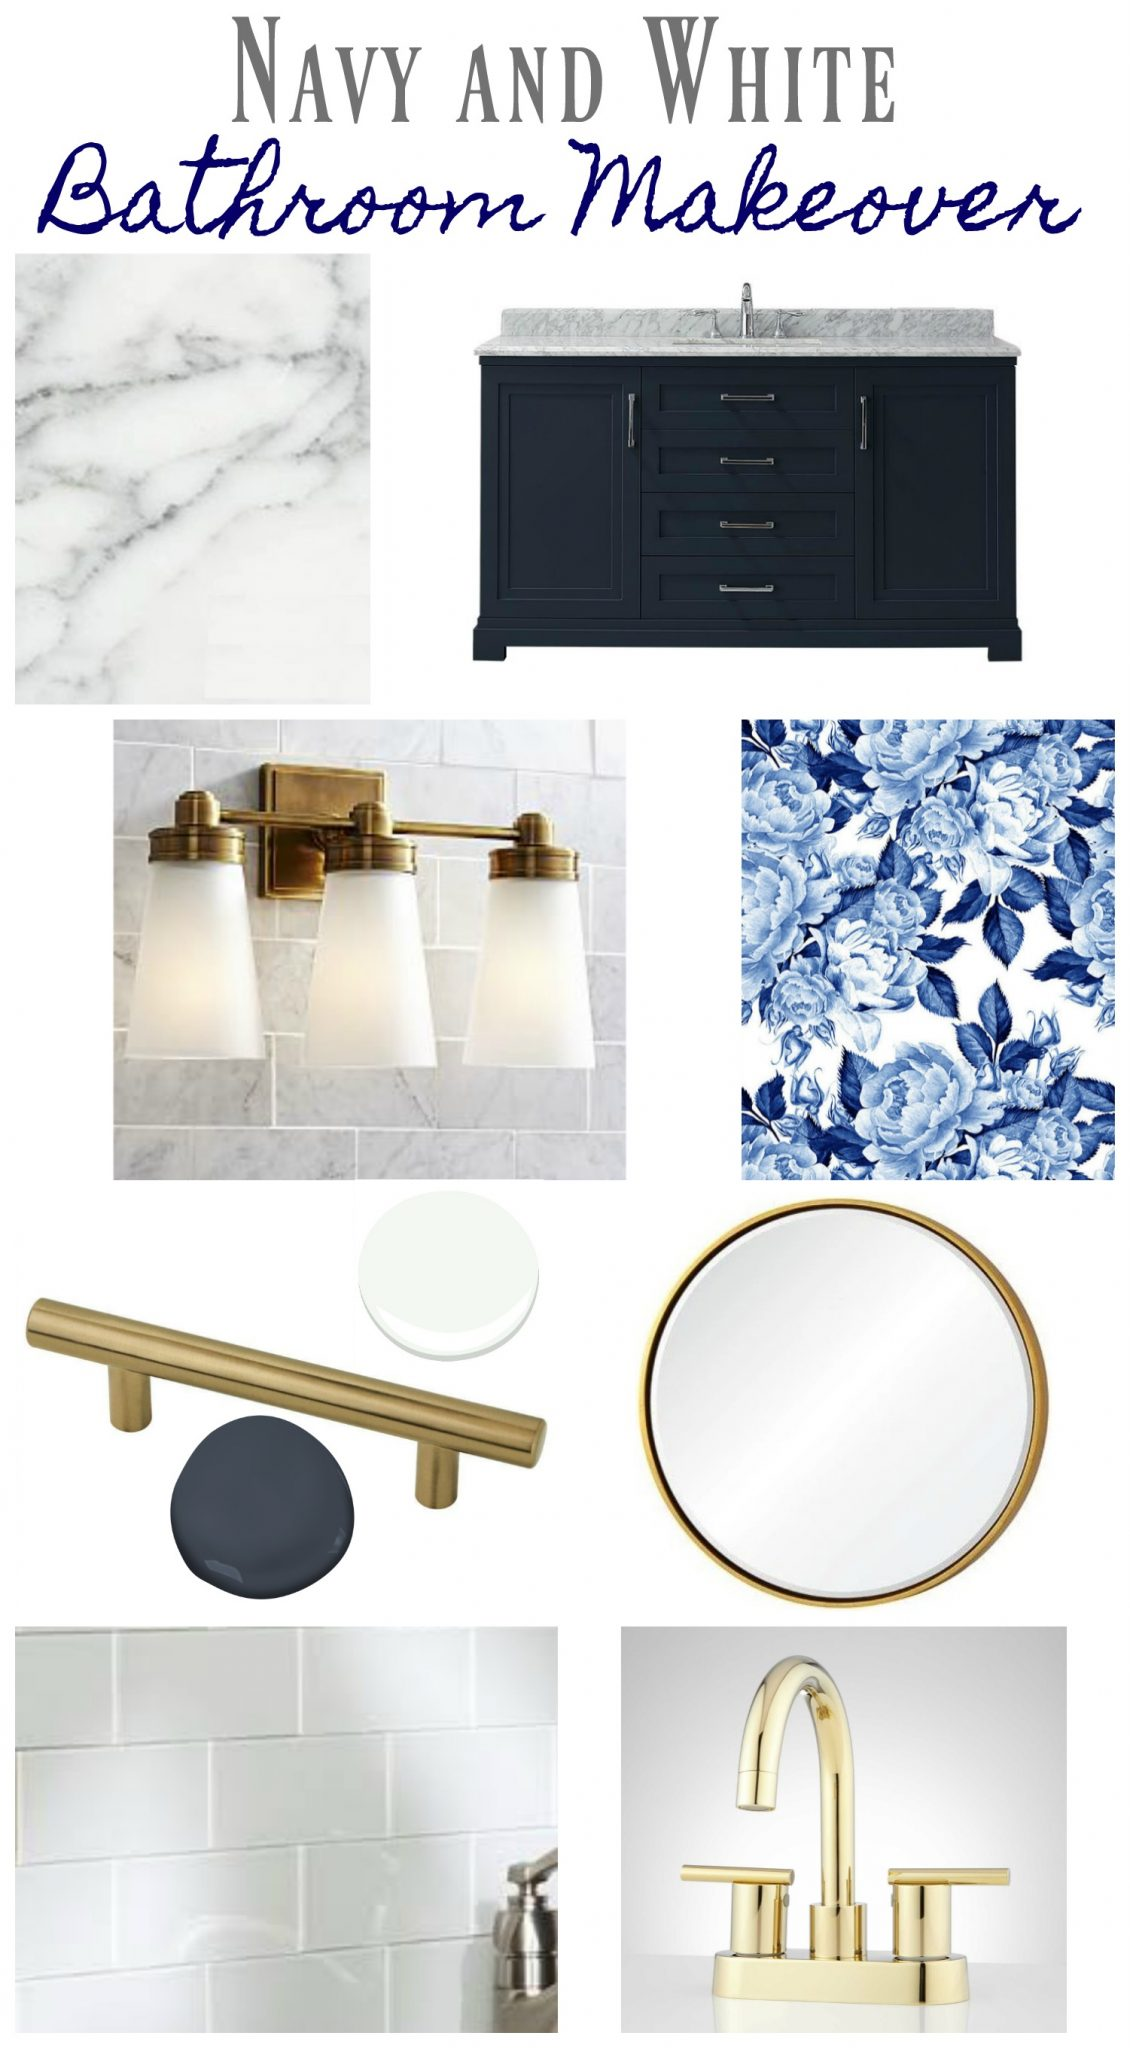 Navy and White Bathroom Makeover - Mood board for bathroom makeover